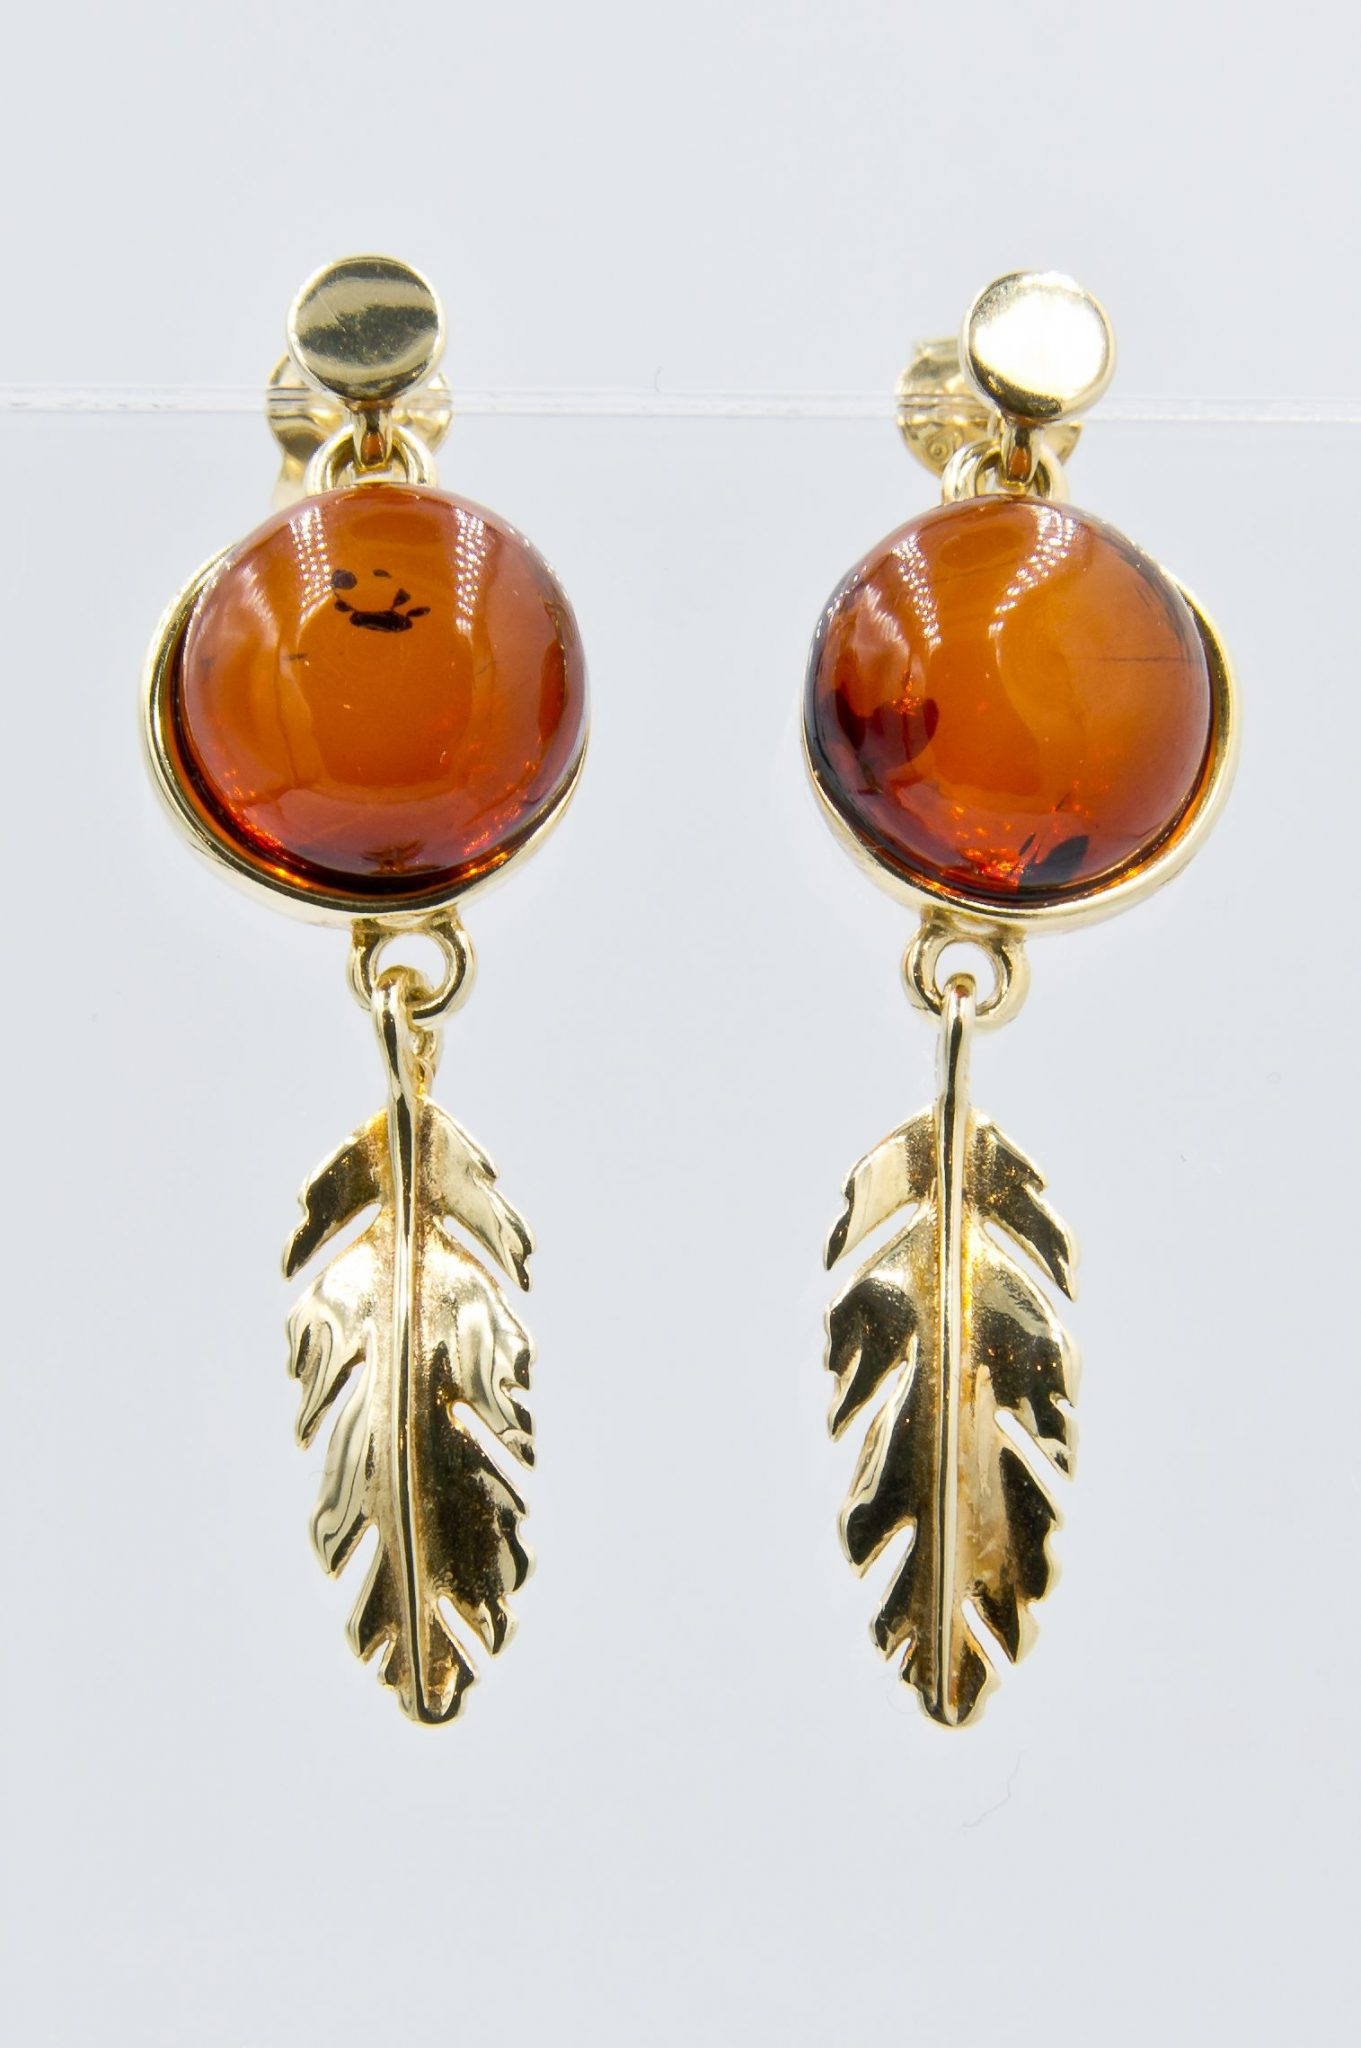 OOAK Decorative earrings with round cognac amber Z1A57